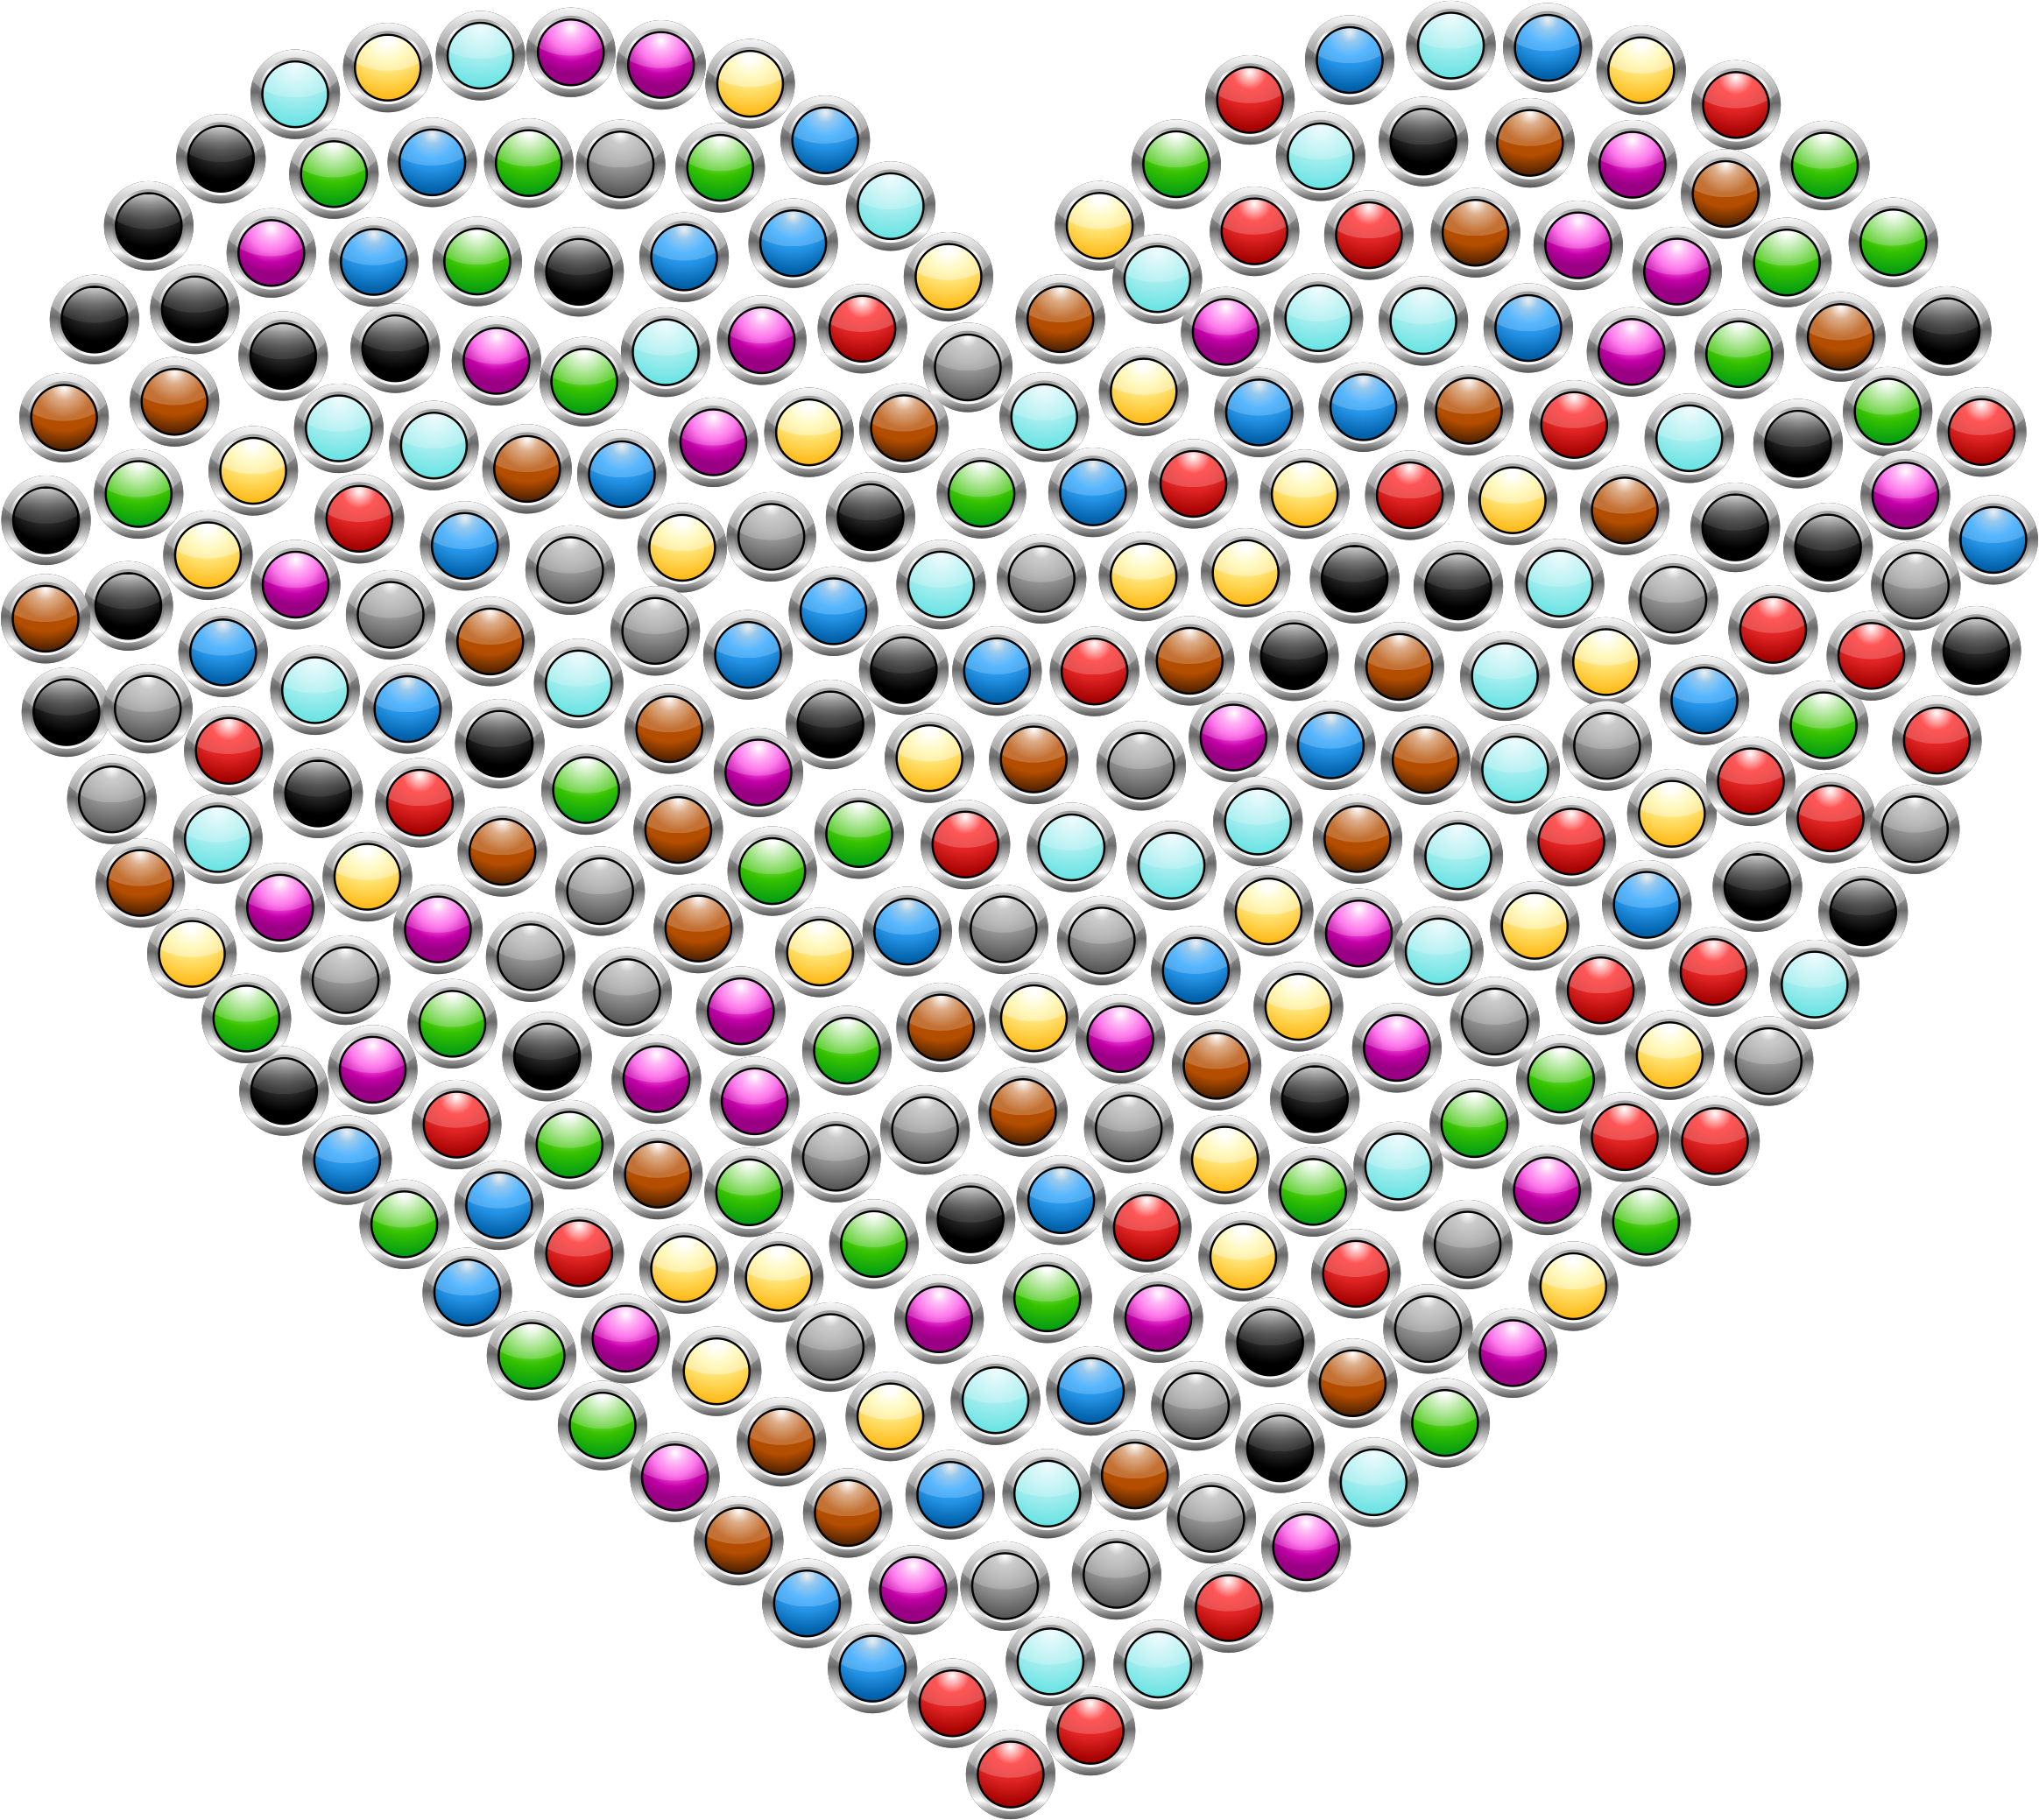 Heart Buttons by GDJ